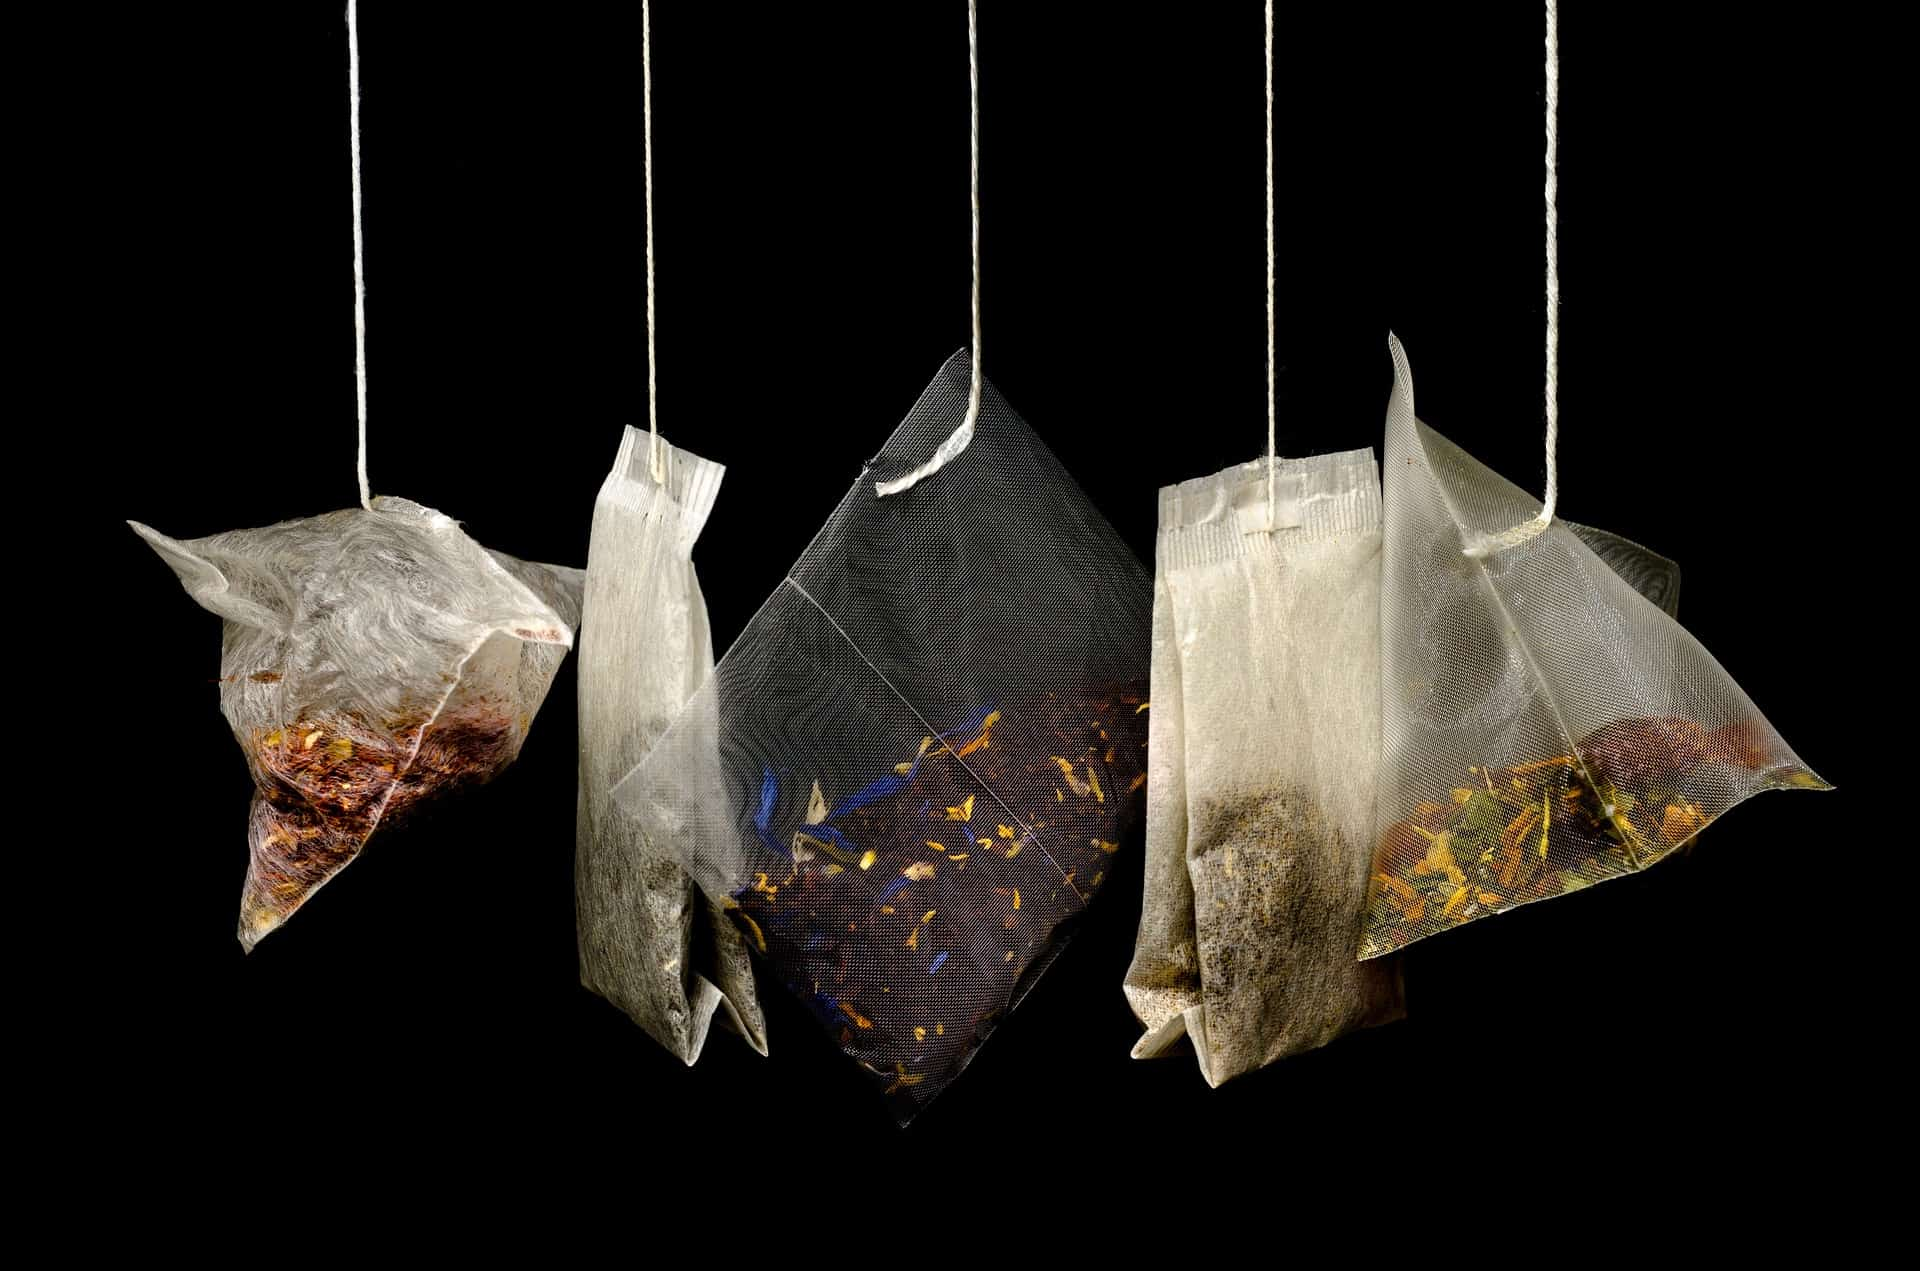 Tea bags - essential to creating the healthy, low-calorie beverage that is second only to water in world-wide consumption